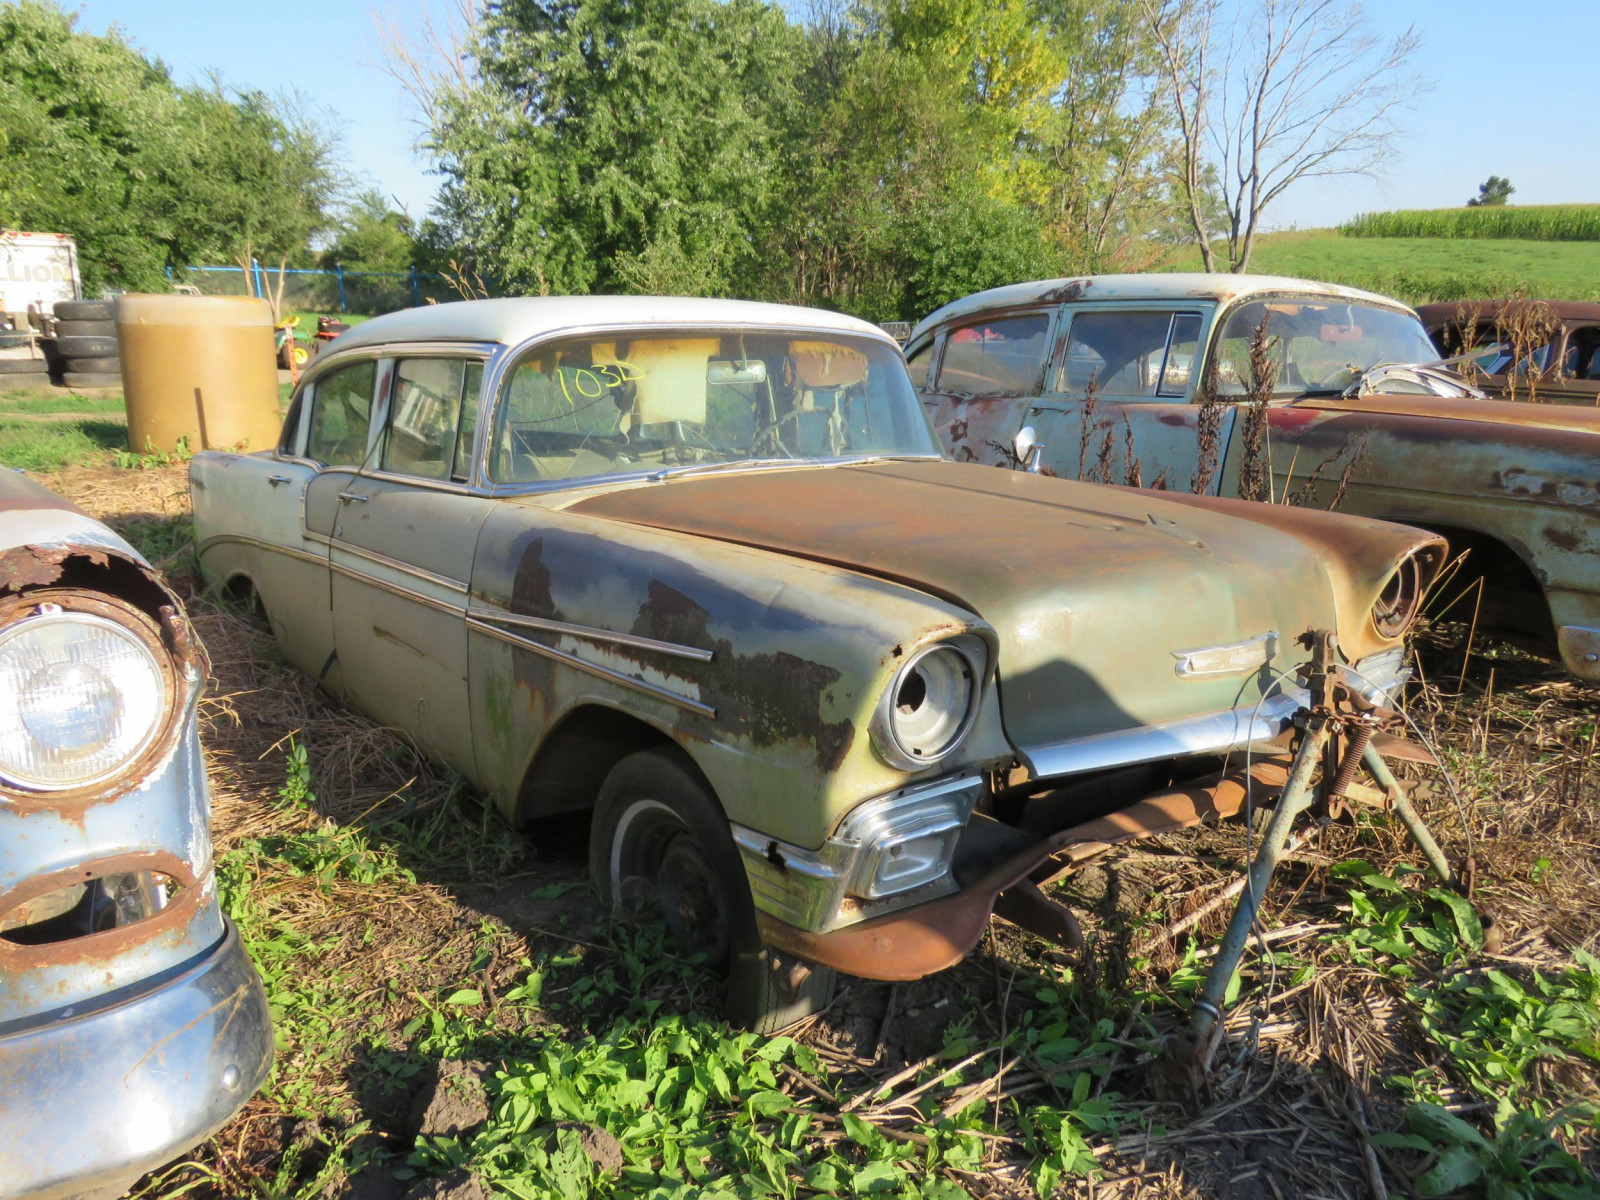 1956 Chevrolet Belair 4dr Sedan for Project or Parts - Image 1